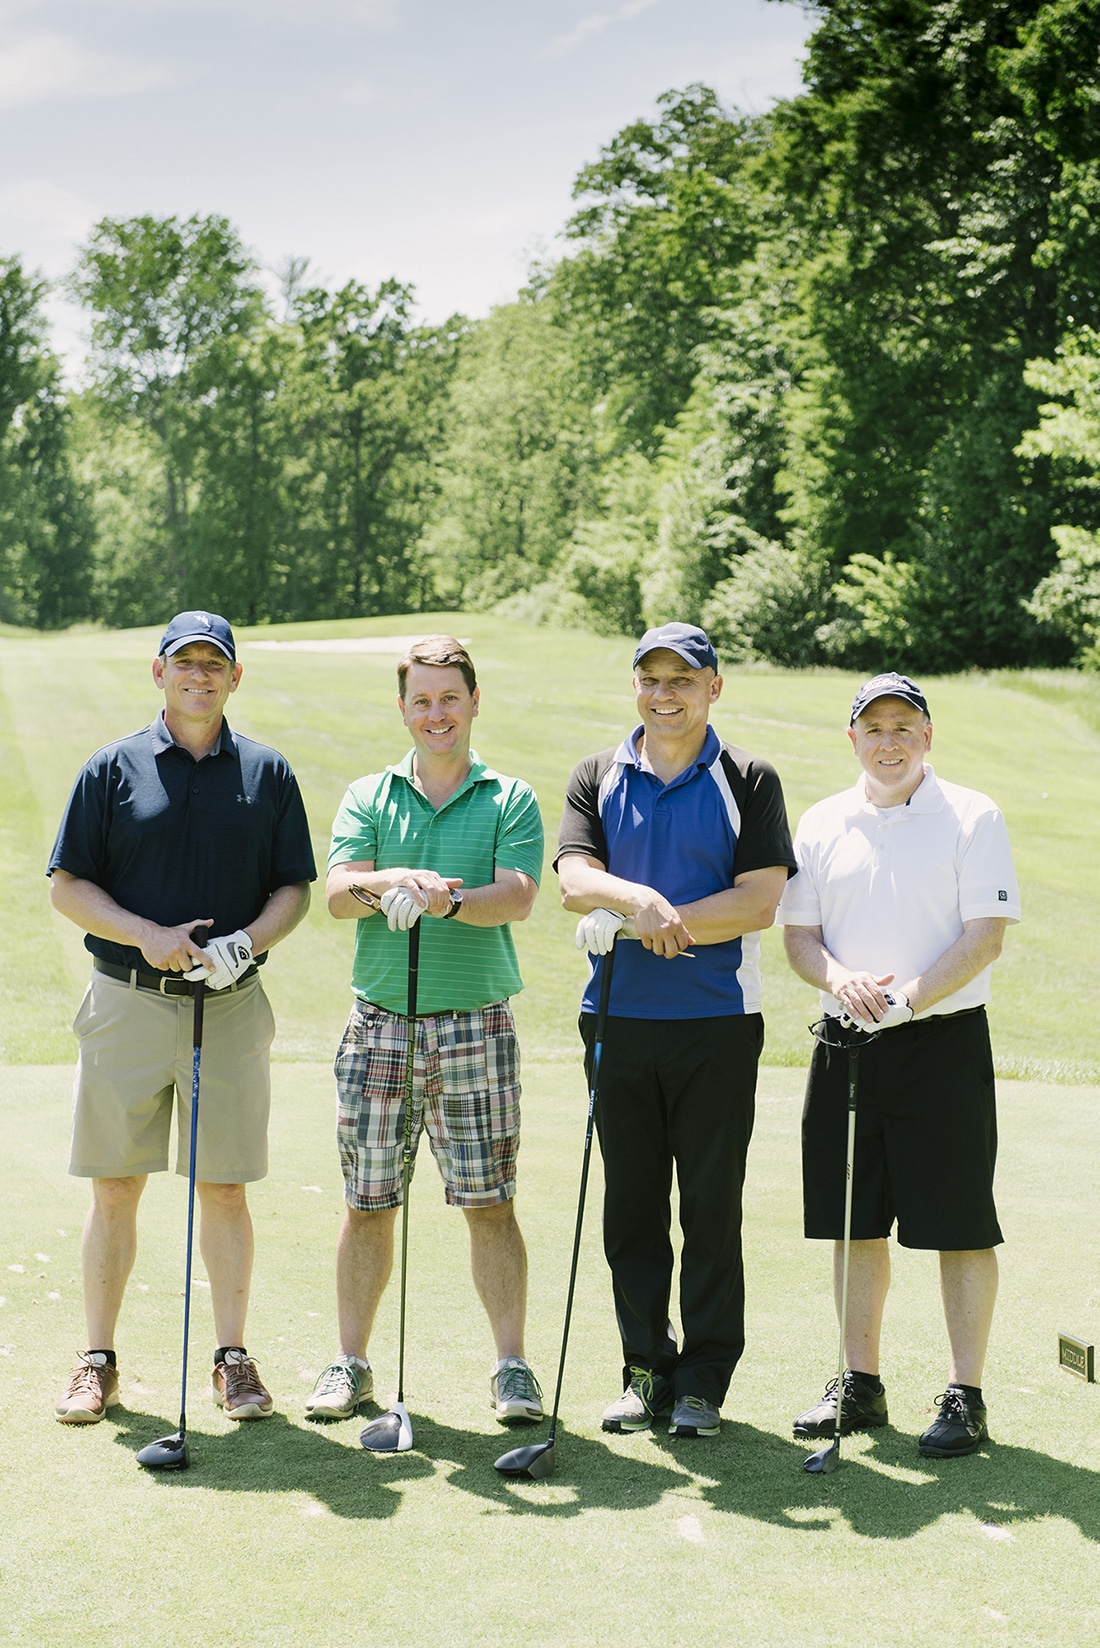 Community Options, Inc. iMatter Spring Golf Classic on Monday, May 21, 2018 at TPC Jasna Polana in Princeton, NJ.Community Options, Inc. iMatter Spring Golf Classic on Monday, May 21, 2018 at TPC Jasna Polana in Princeton, NJ.